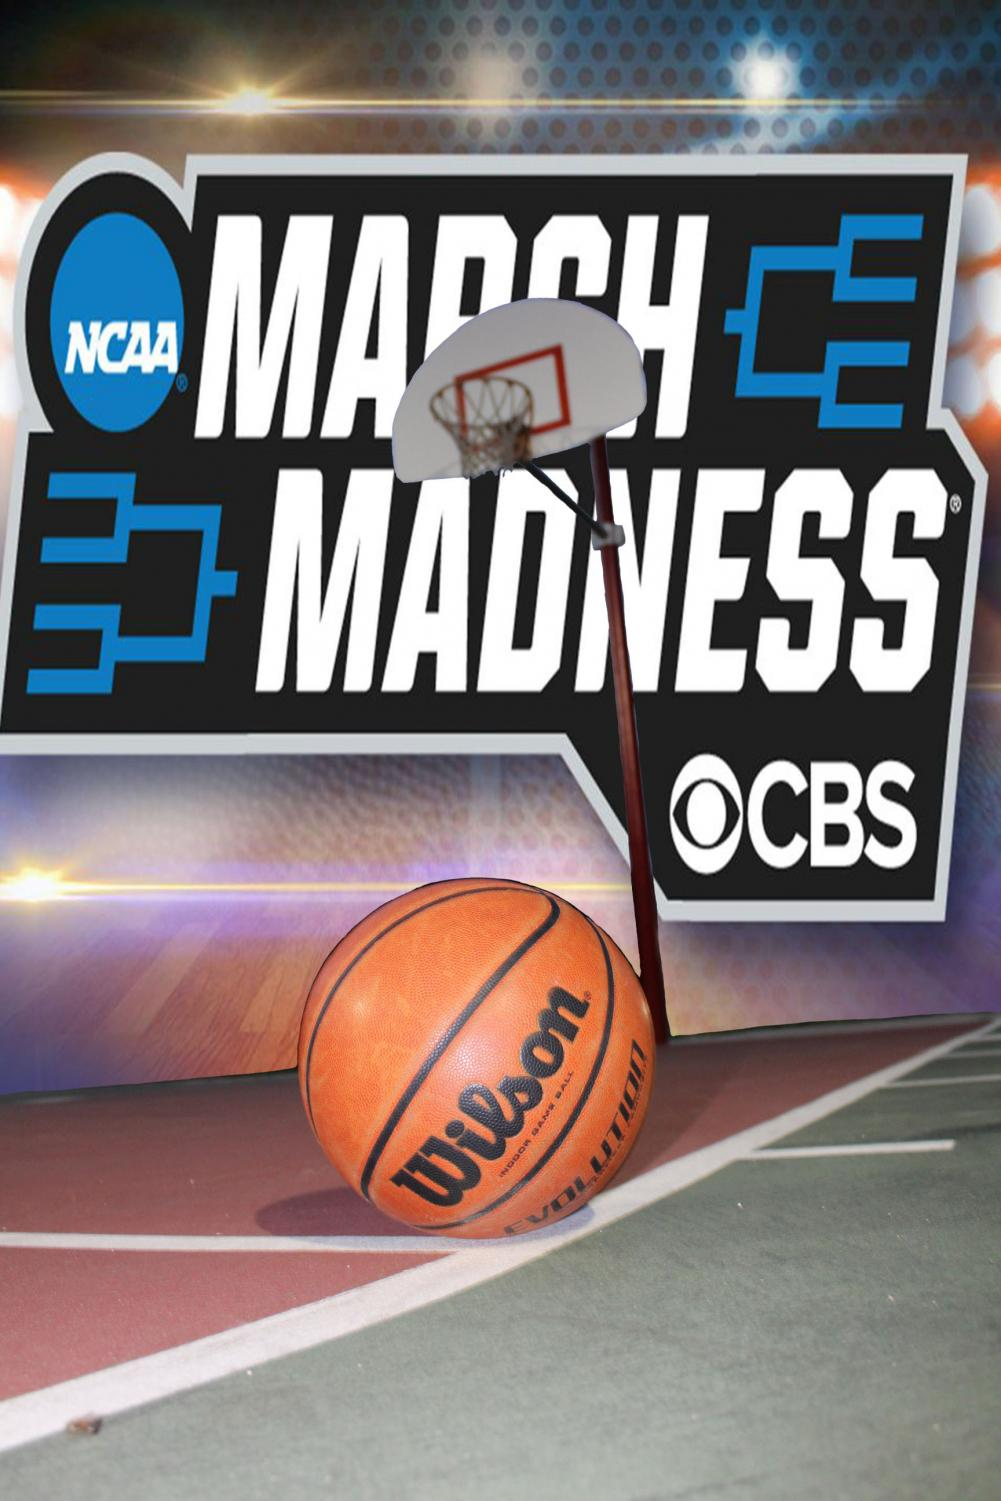 In this NCAA Division 1 men's basketball college tournament, teams will compete to decide who the real champions are this year.